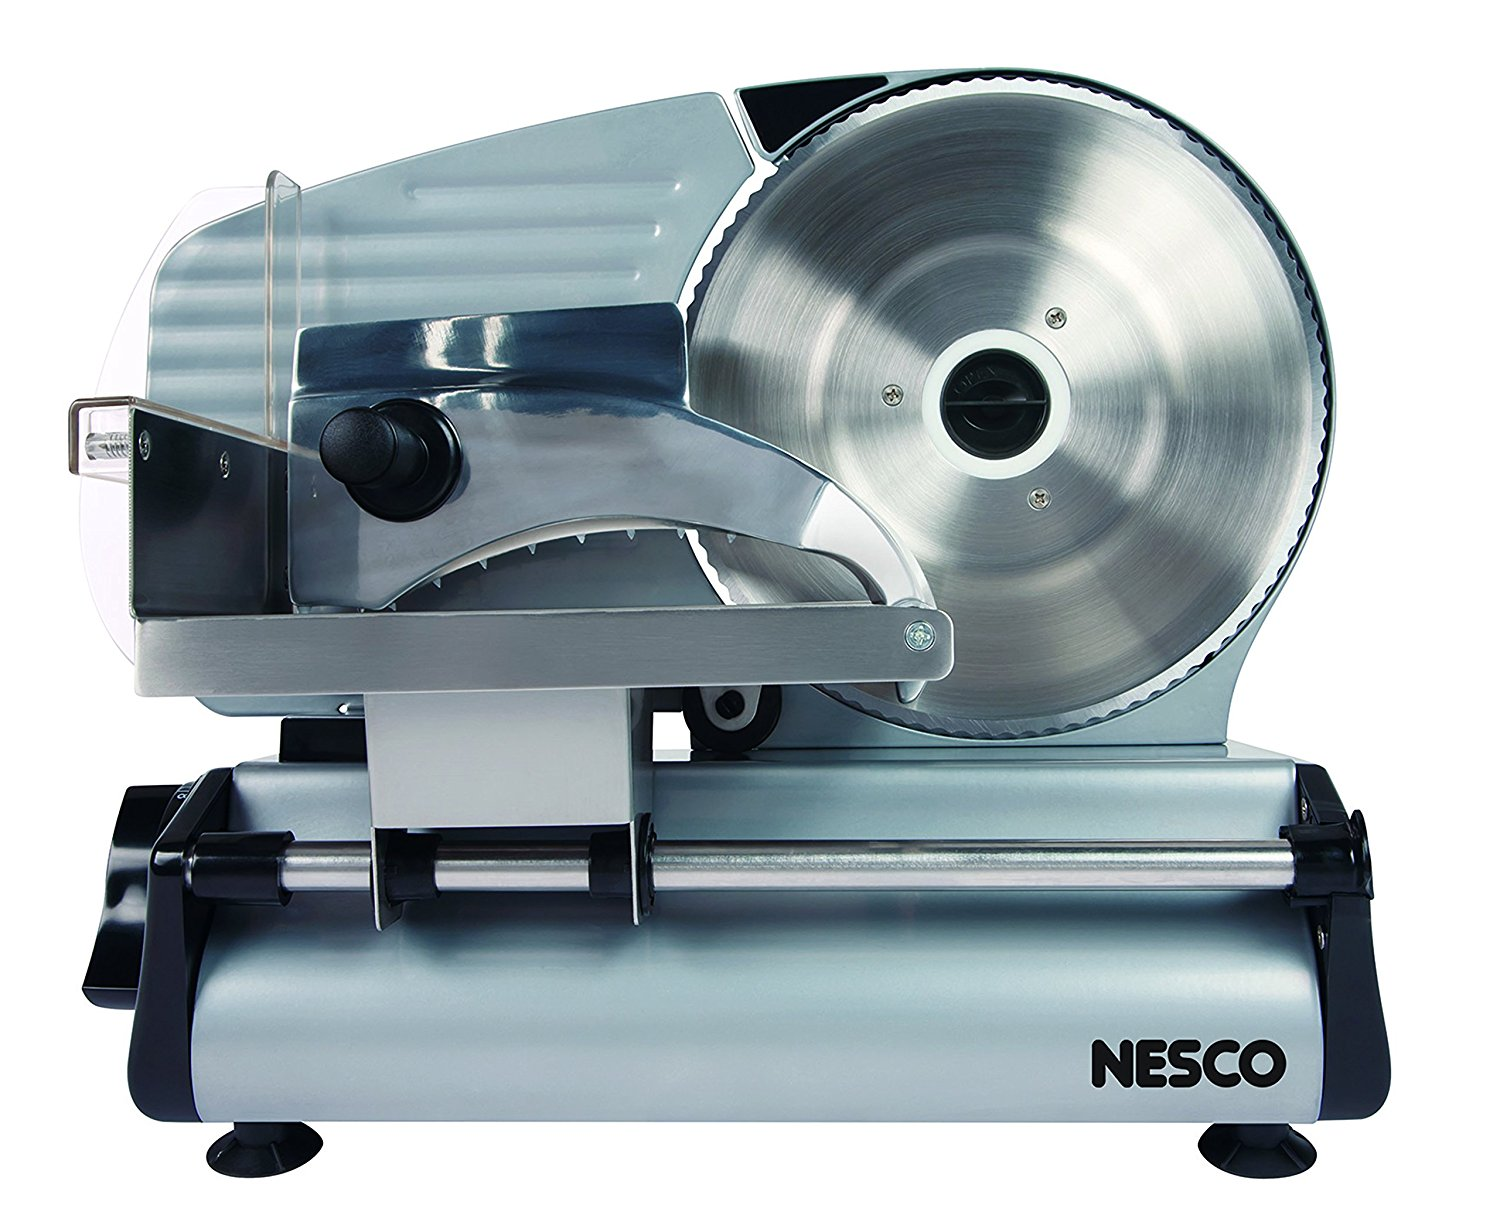 Nesco Electric Food and Meat Slicer